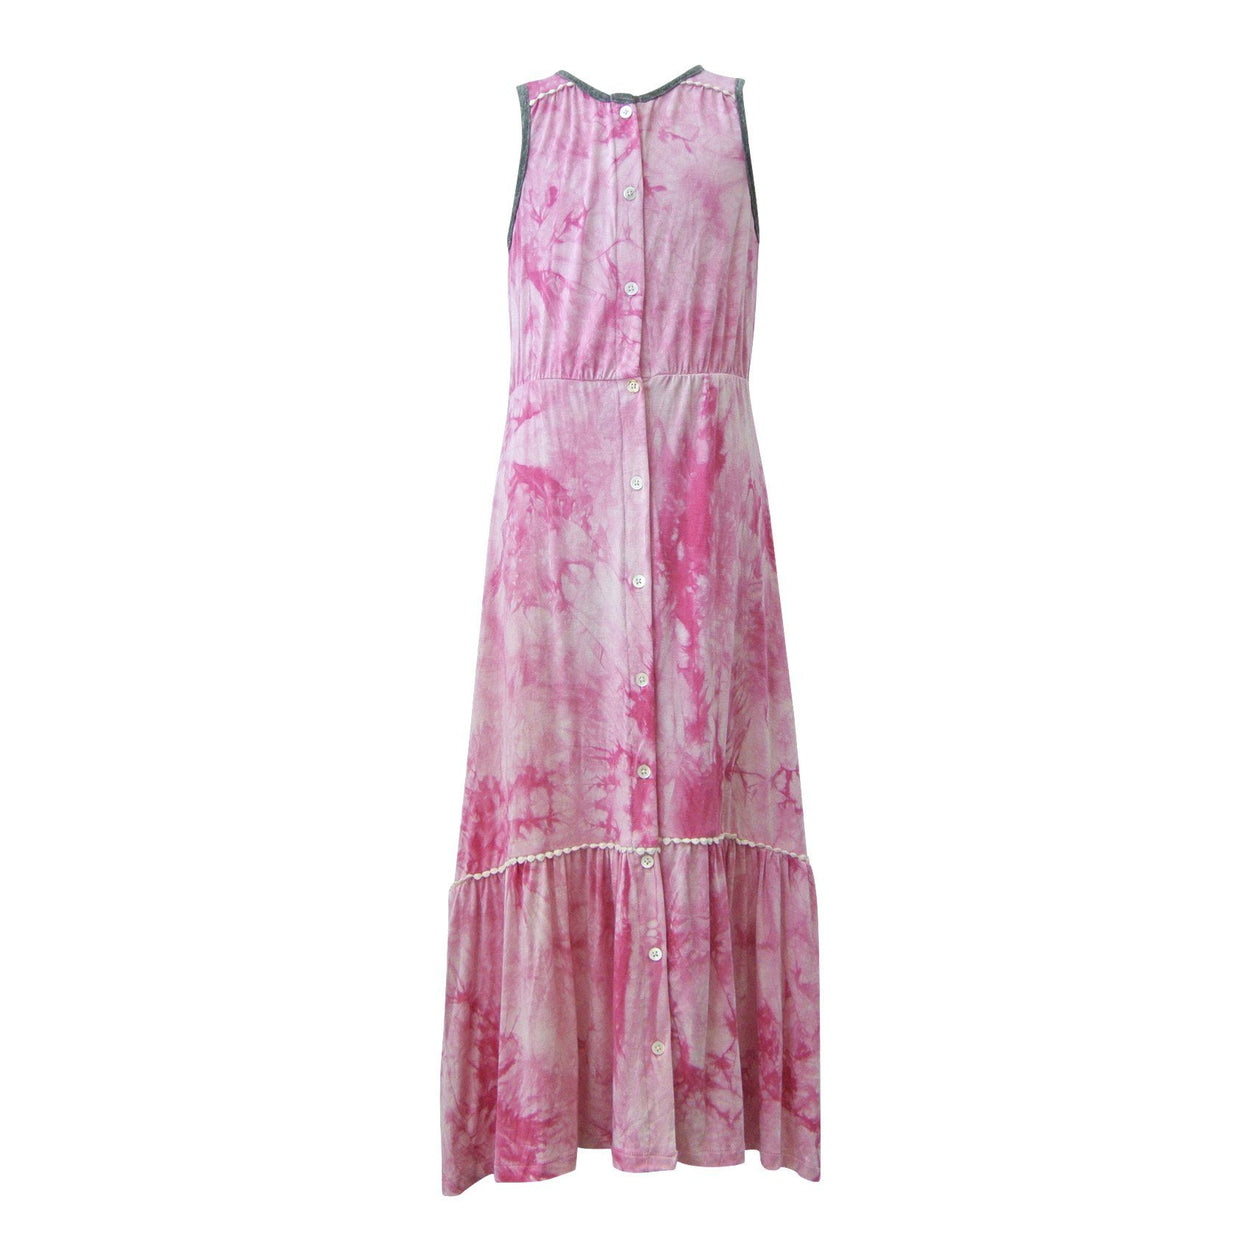 Helen Sleeveless Maxi Dress Hippie At Heart by Miki Miette